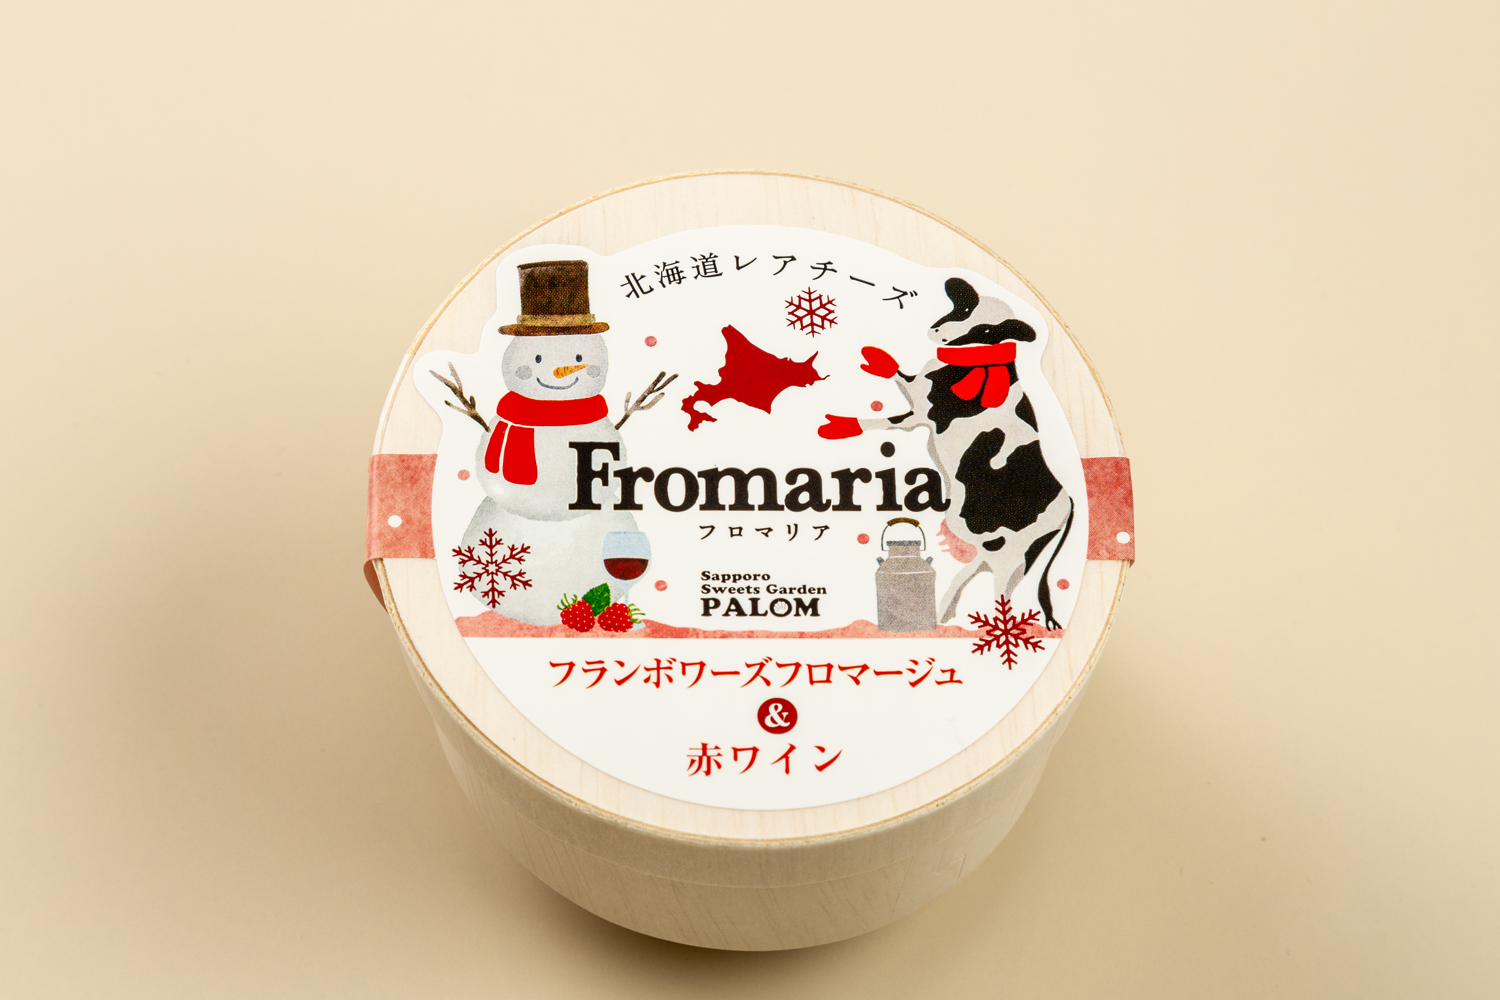 Fromaria-003